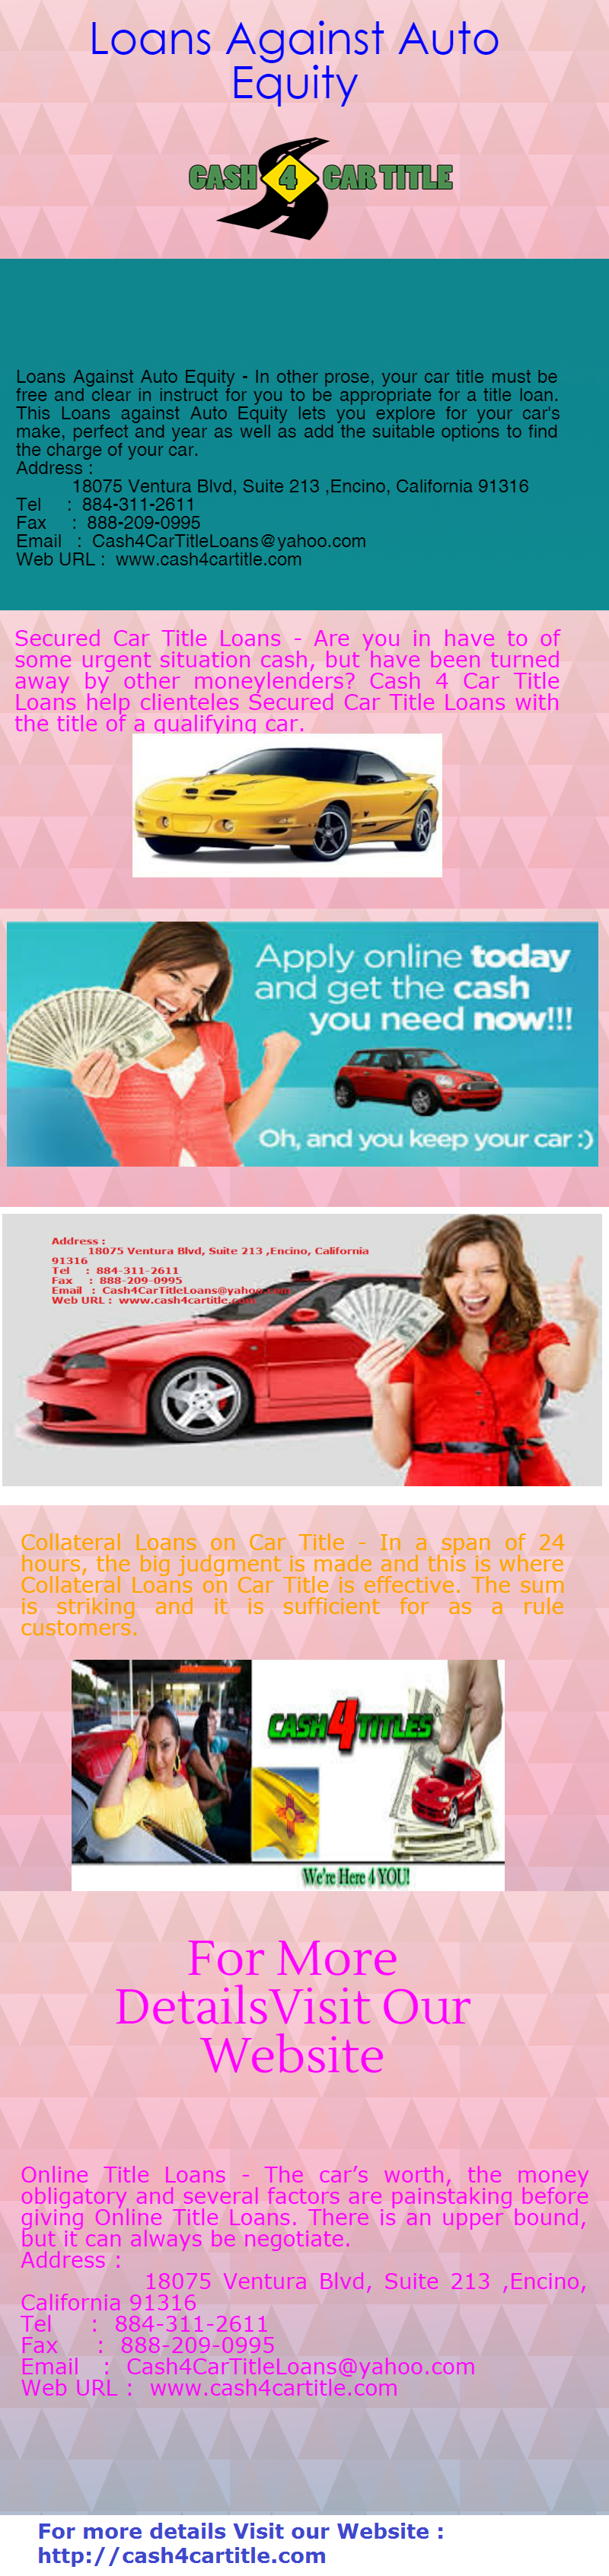 Auto Title Loans Online Choose Us During An Emergency To Get Cash Faster Amazing Options Fast Approval And No Comp Get Cash Fast Car Title Collateral Loans